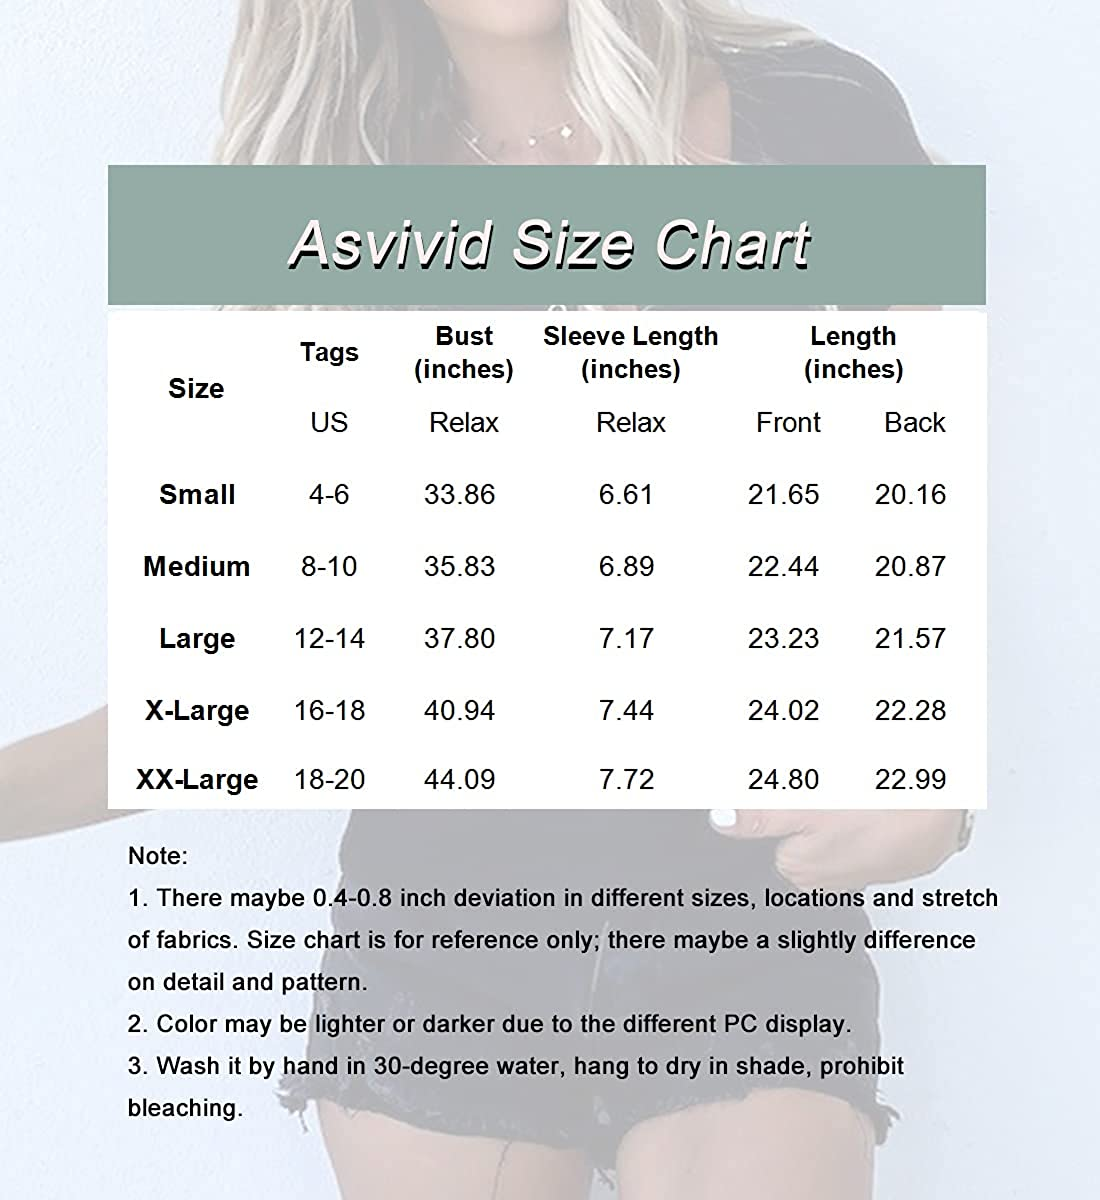 Asvivid Short Sleeve 1/4 Button Up Shirts for Women Slim Fitting V Neck Knit Tunic Tops T Shirts